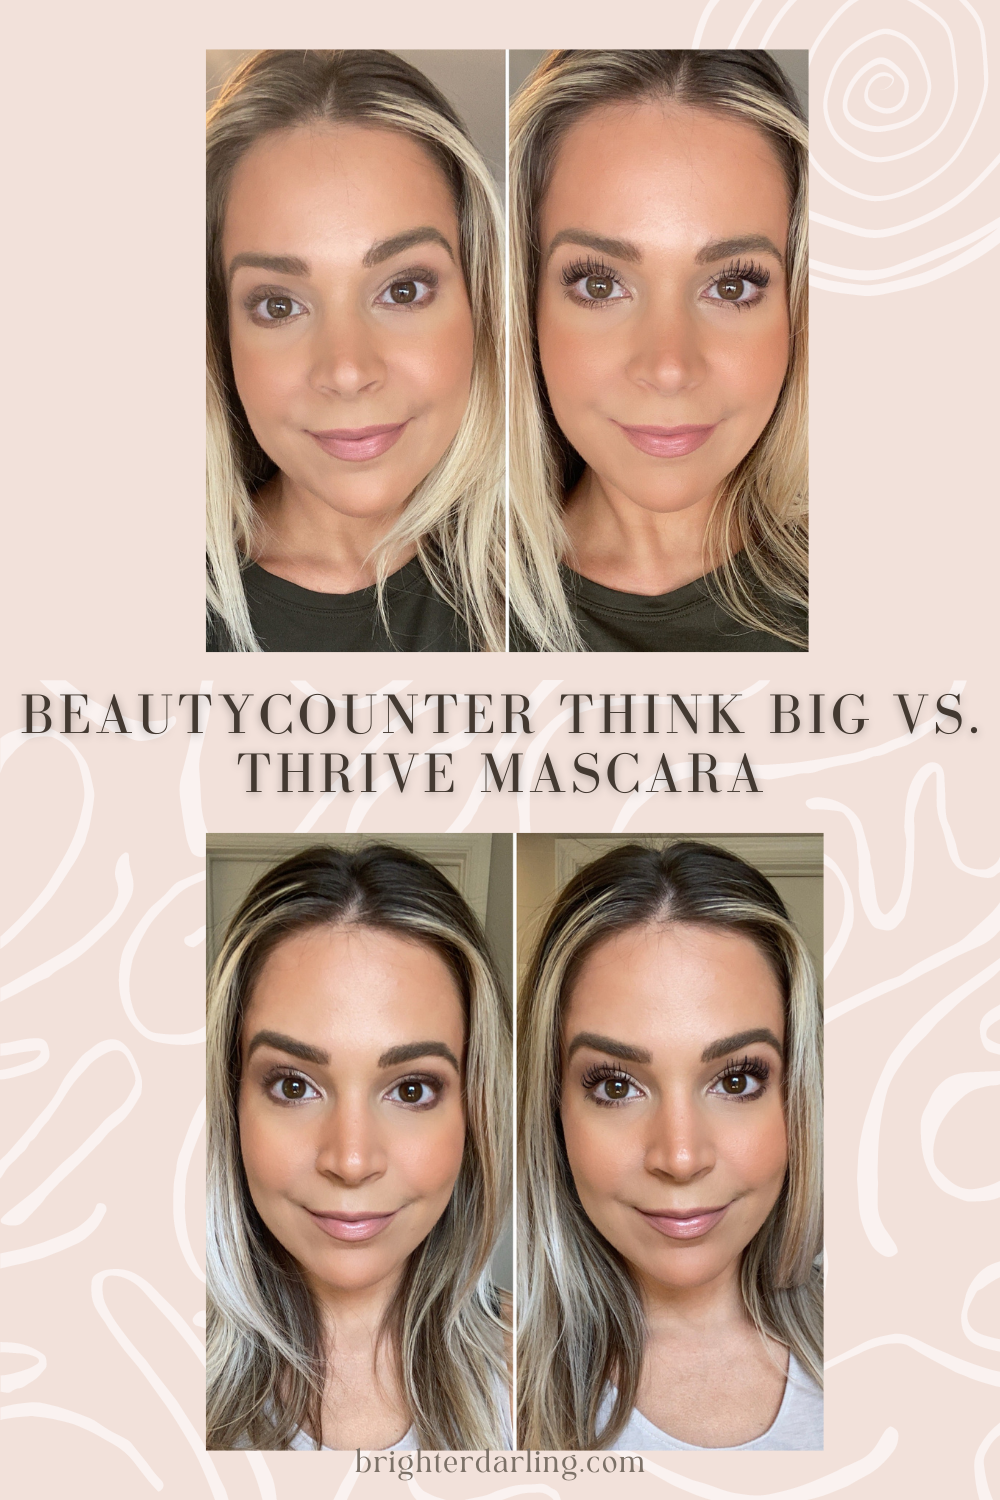 Comparing Beautycounter Think Big Mascara to Thrive Causemetics Lash Extensions Mascara | Before and after using Beautycounter Think Big Mascara and Thrive Causemetics | Beautycounter Think Big Mascara Review